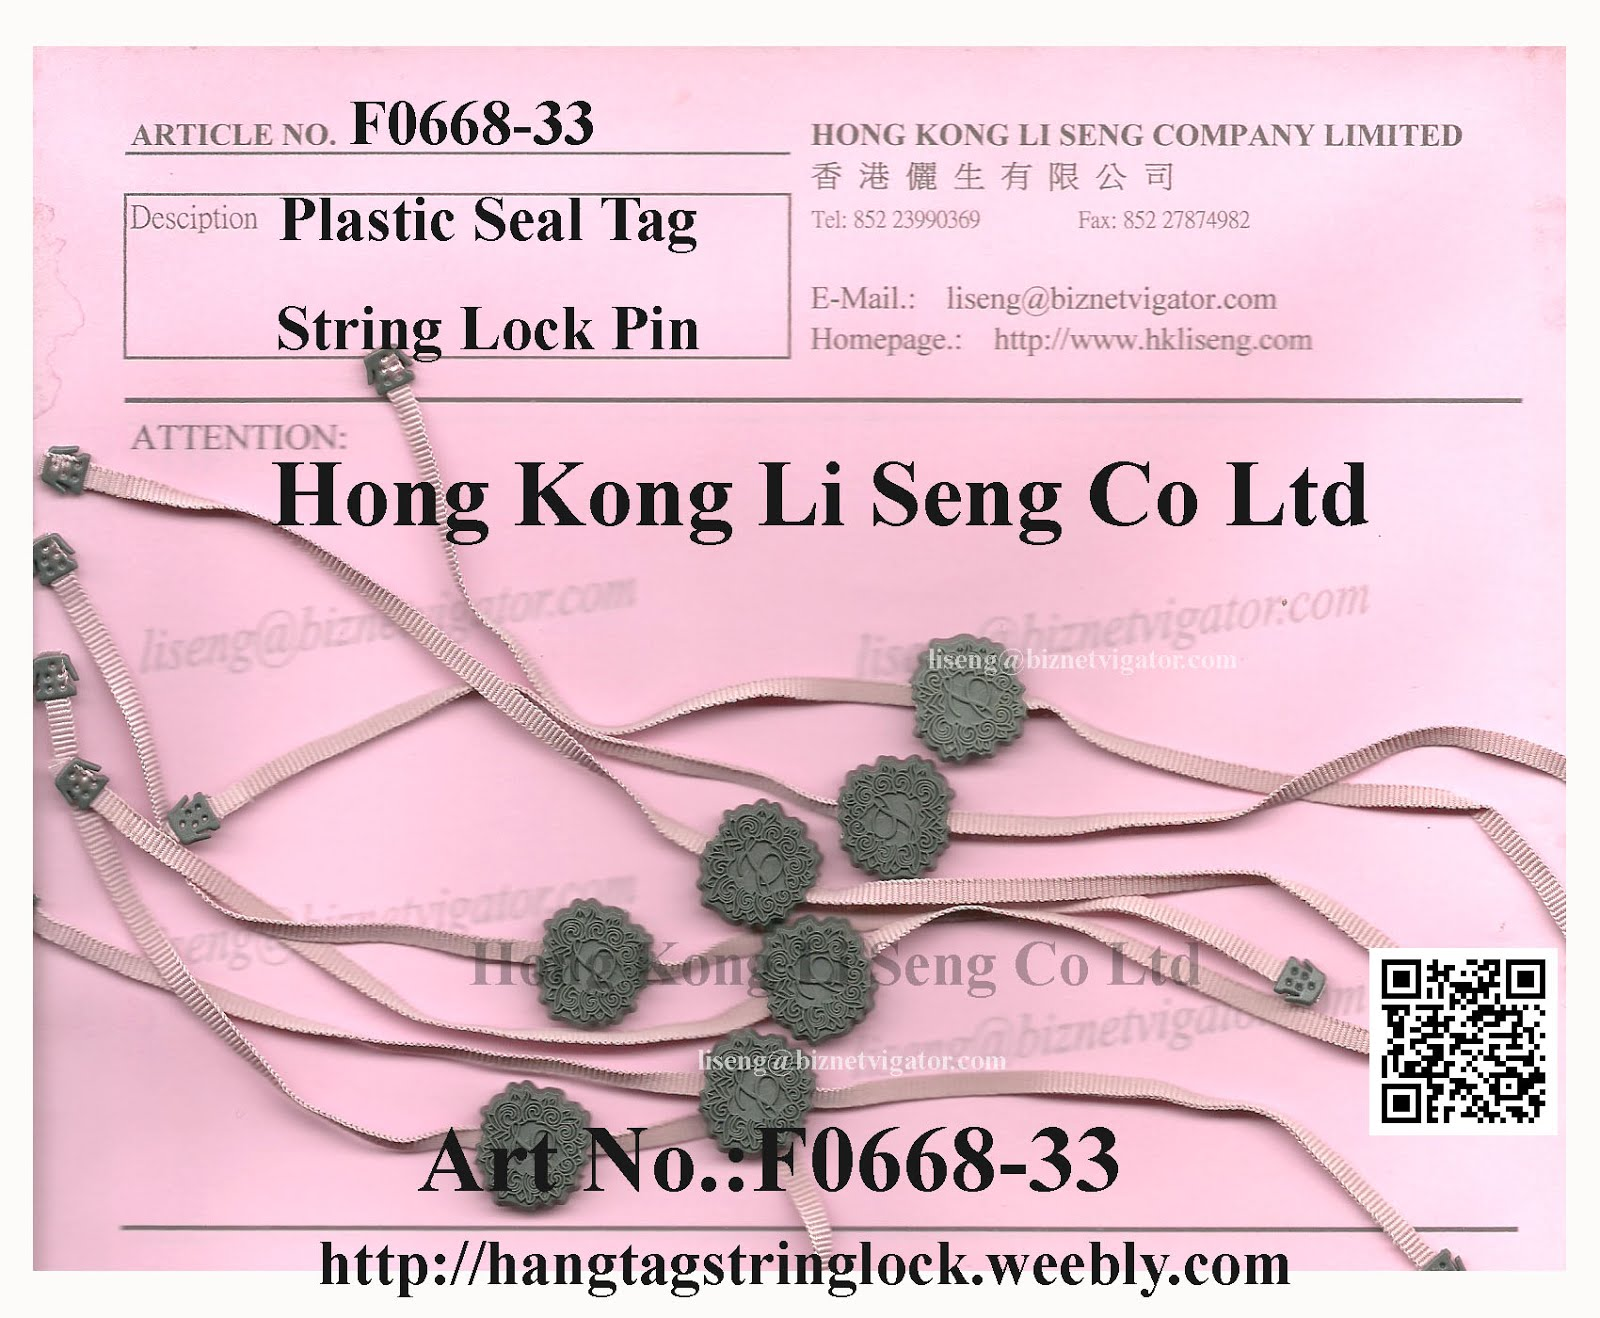 Plastic Seal Grosgrain Tape String Lock Pin Factory